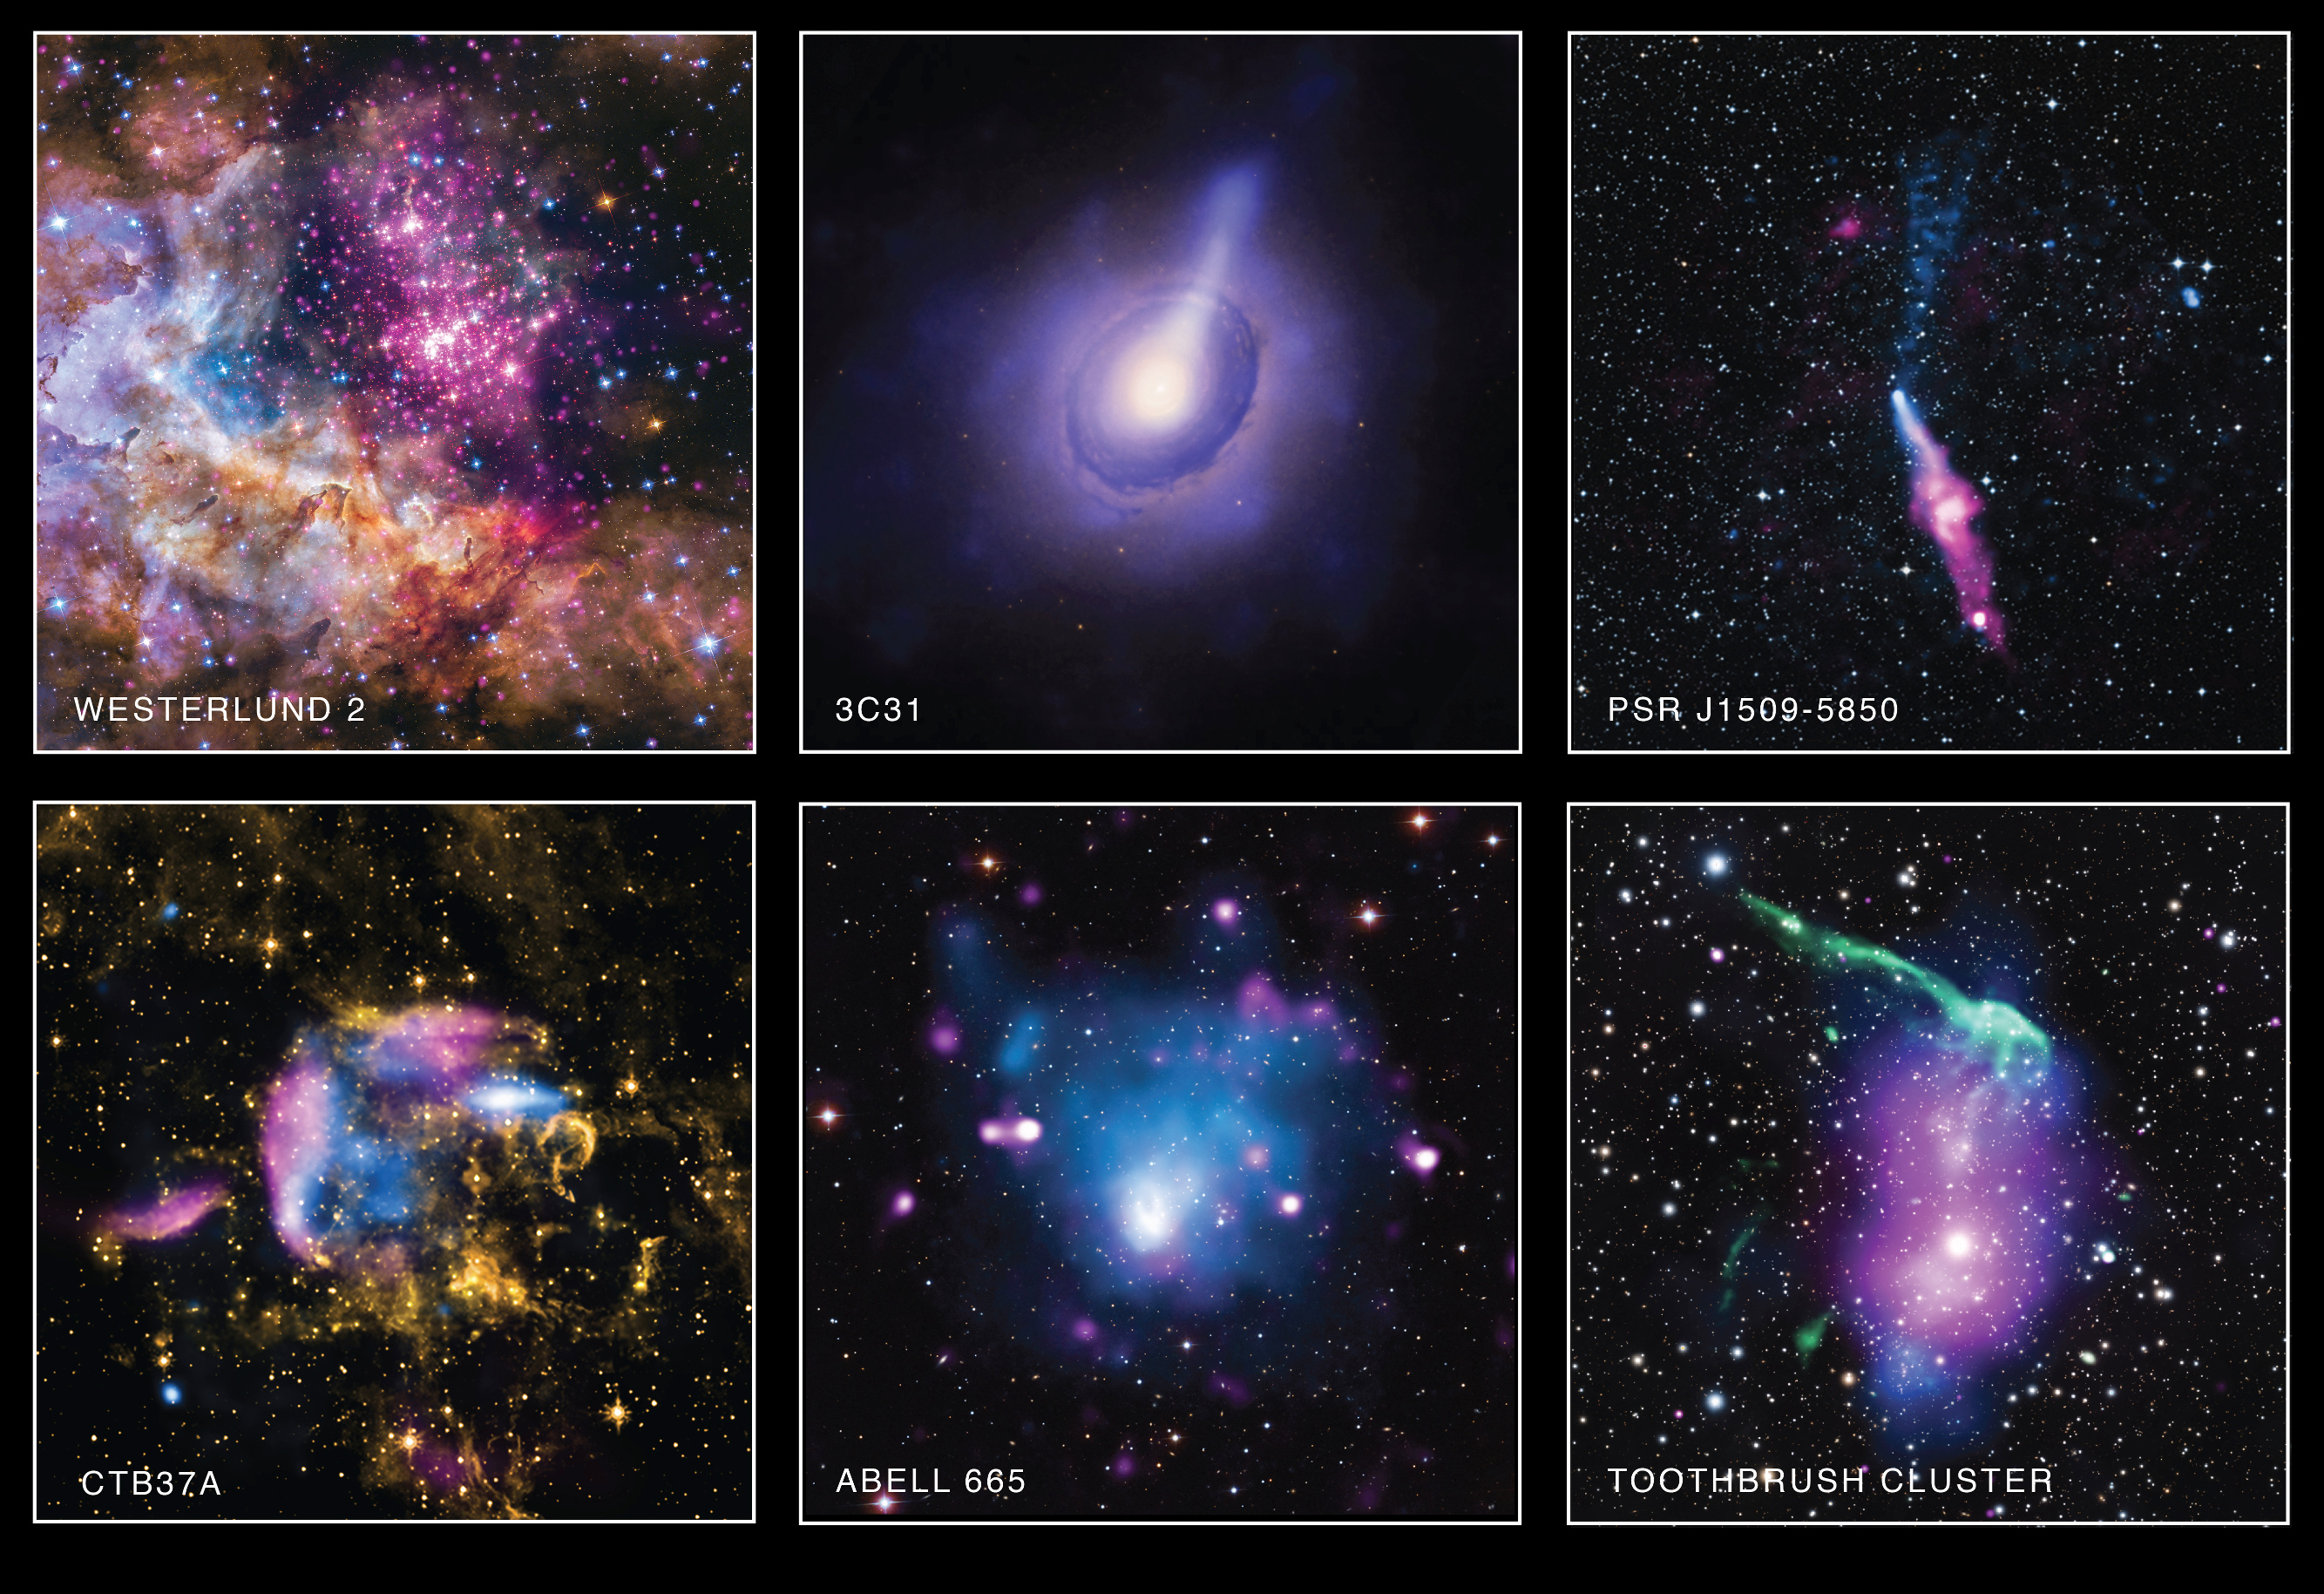 Each of these six new images from NASA's Chandra X-ray Observatory also includes data from telescopes covering other parts of the electromagnetic spectrum, such as visible and infrared light. This collection of images represents just a small fraction of the treasures that reside in Chandra's unique X-ray archive. For descriptions of all six images, see below. Image credits: NASA/CXC et al.